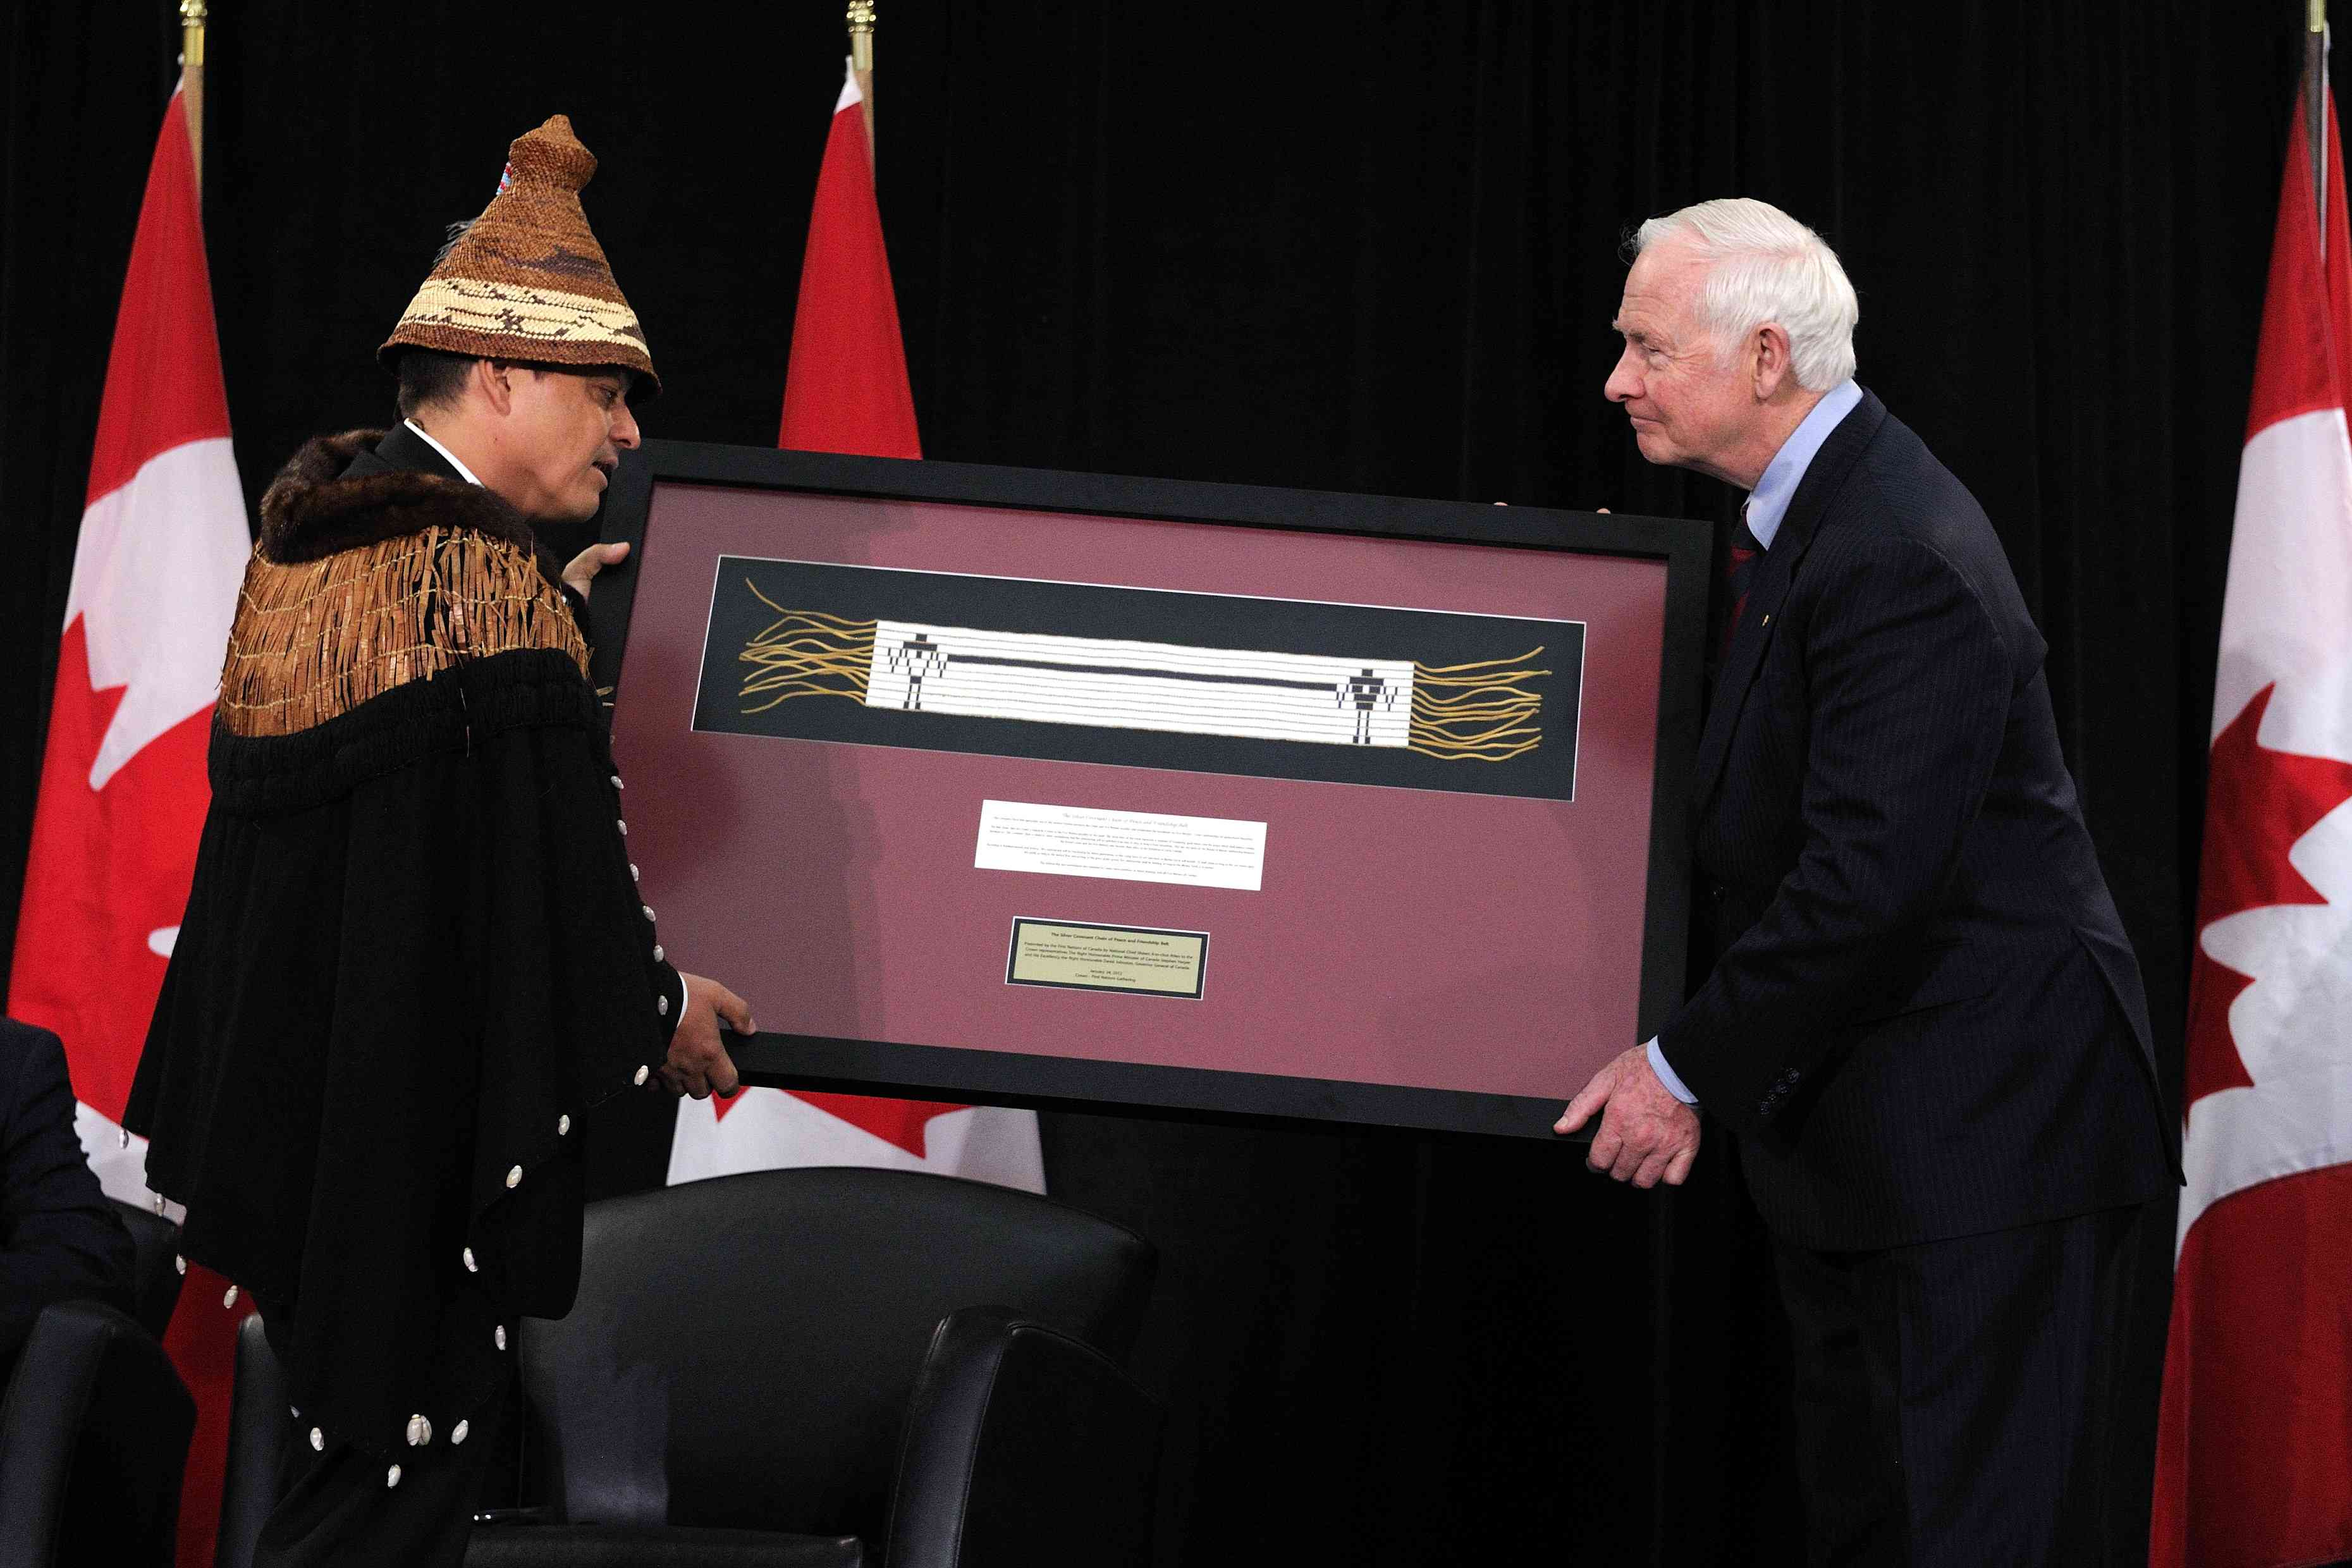 Chief Shawn Atleo exchange gifts with the Governor General. Chief Atleo offered a framed wampum belt on behalf of the Assembly of First Nations.